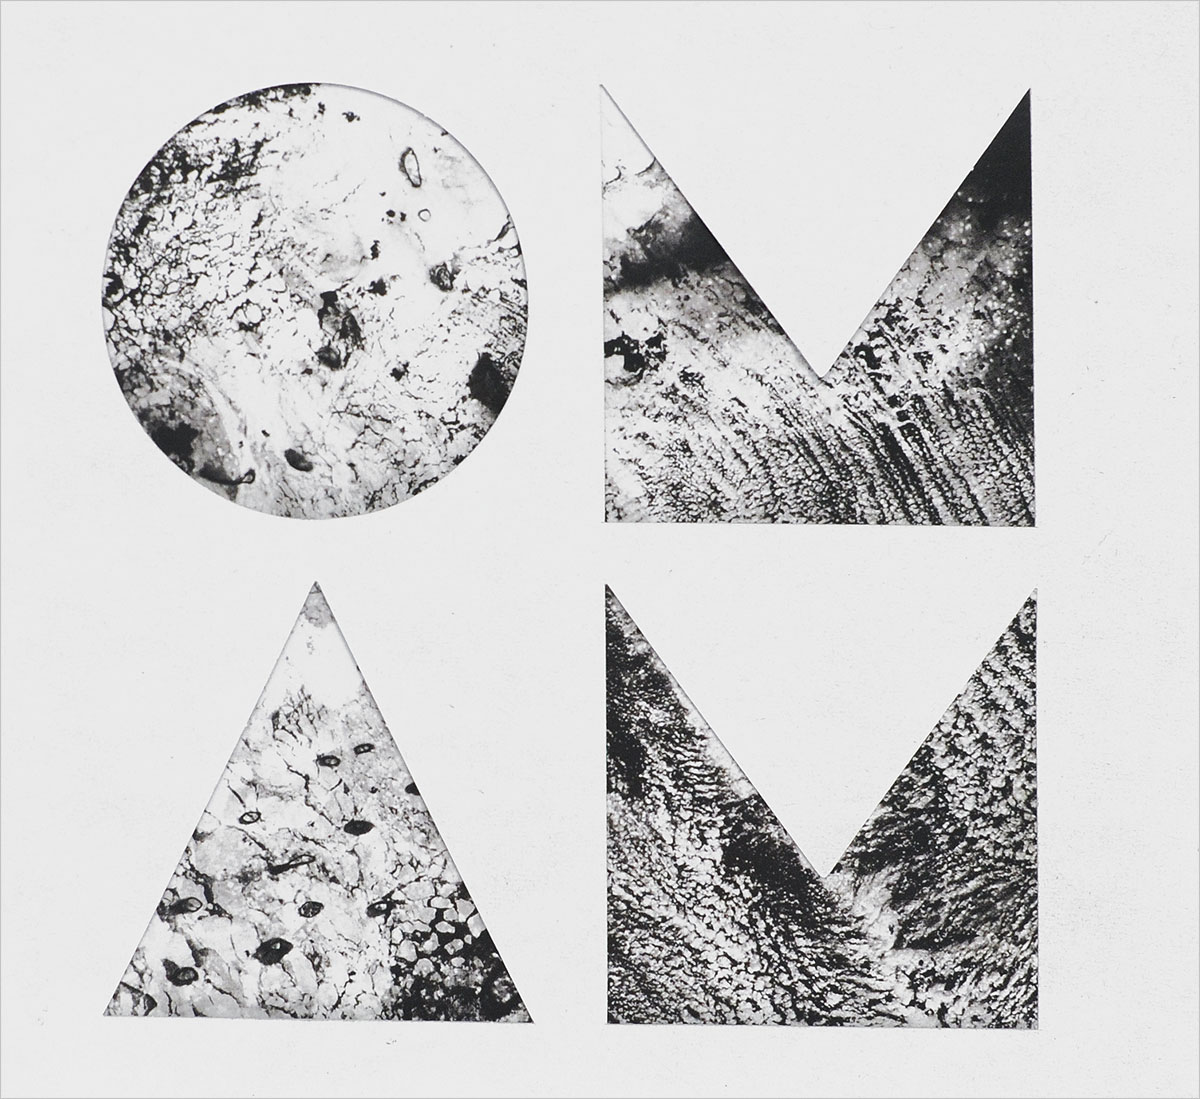 Of Monsters And Men Of Monsters And Men. Beneath The Skin. Deluxe Edition of monsters and men of monsters and men beneath the skin 2 lp